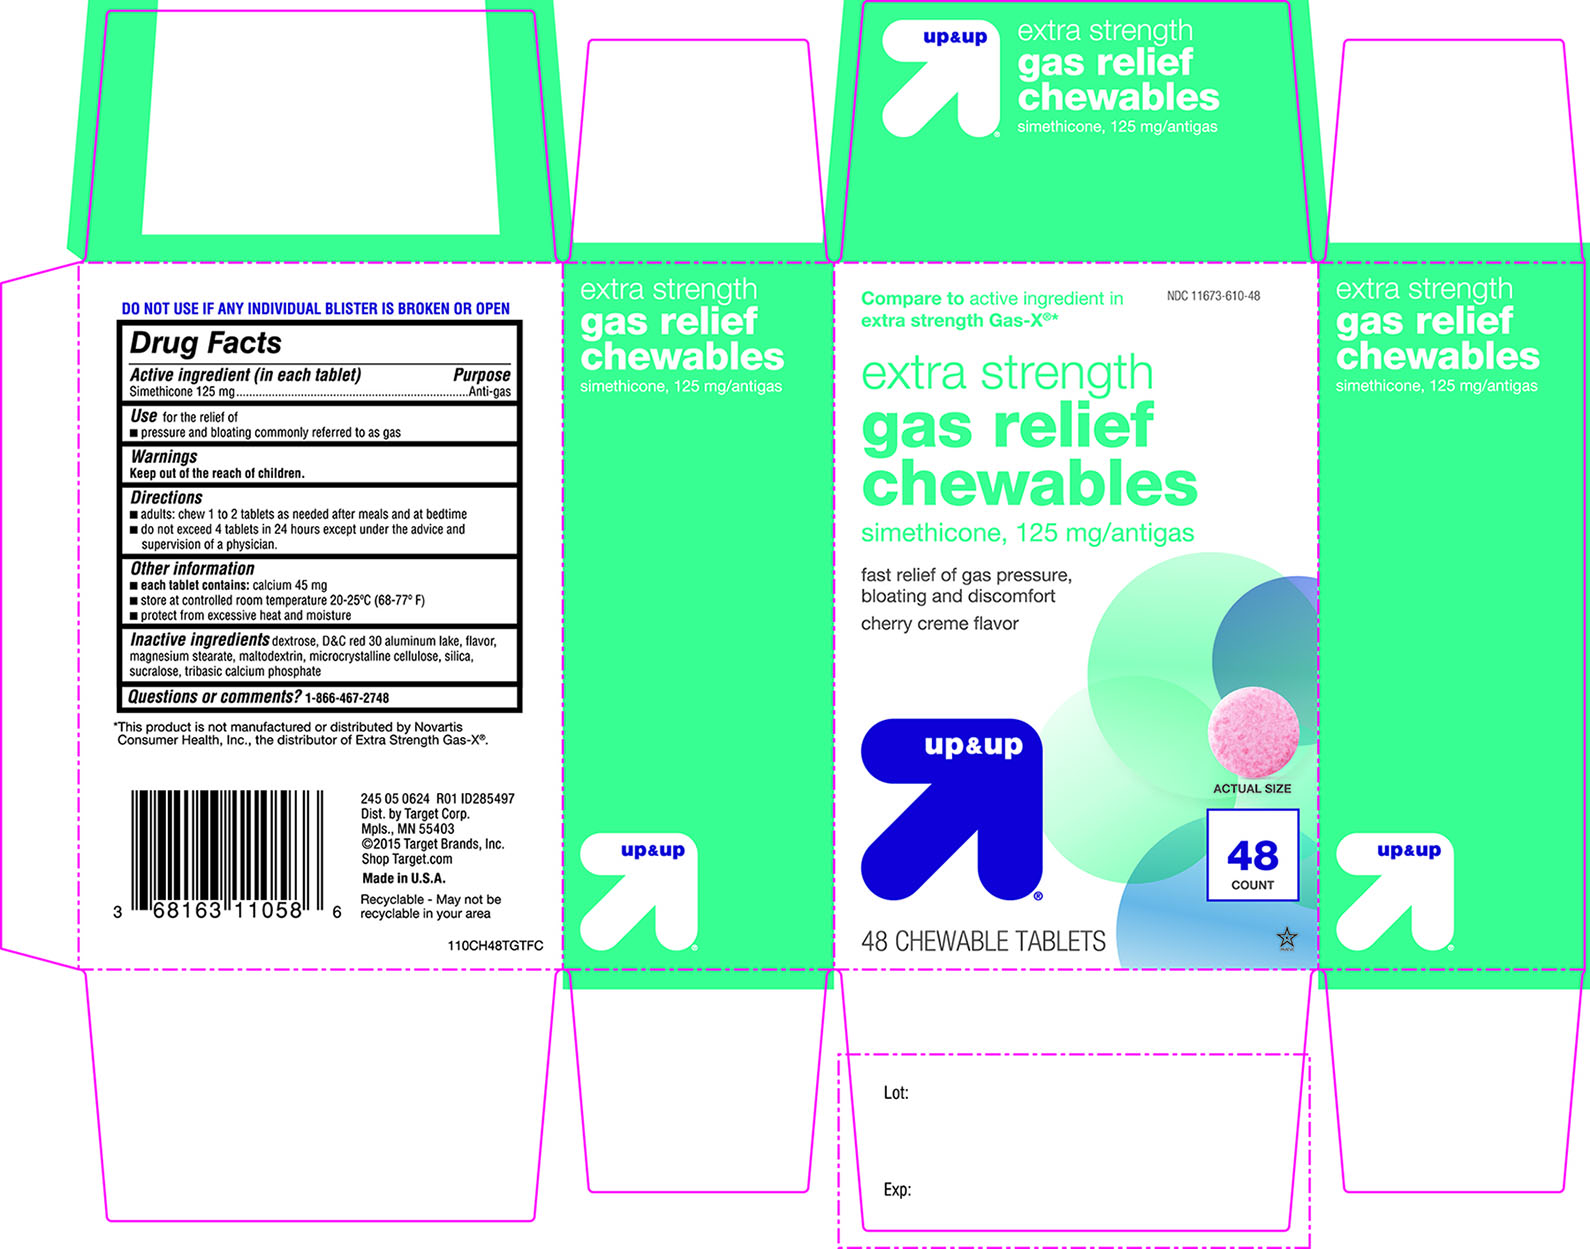 up and up extra strength gas relief chewables